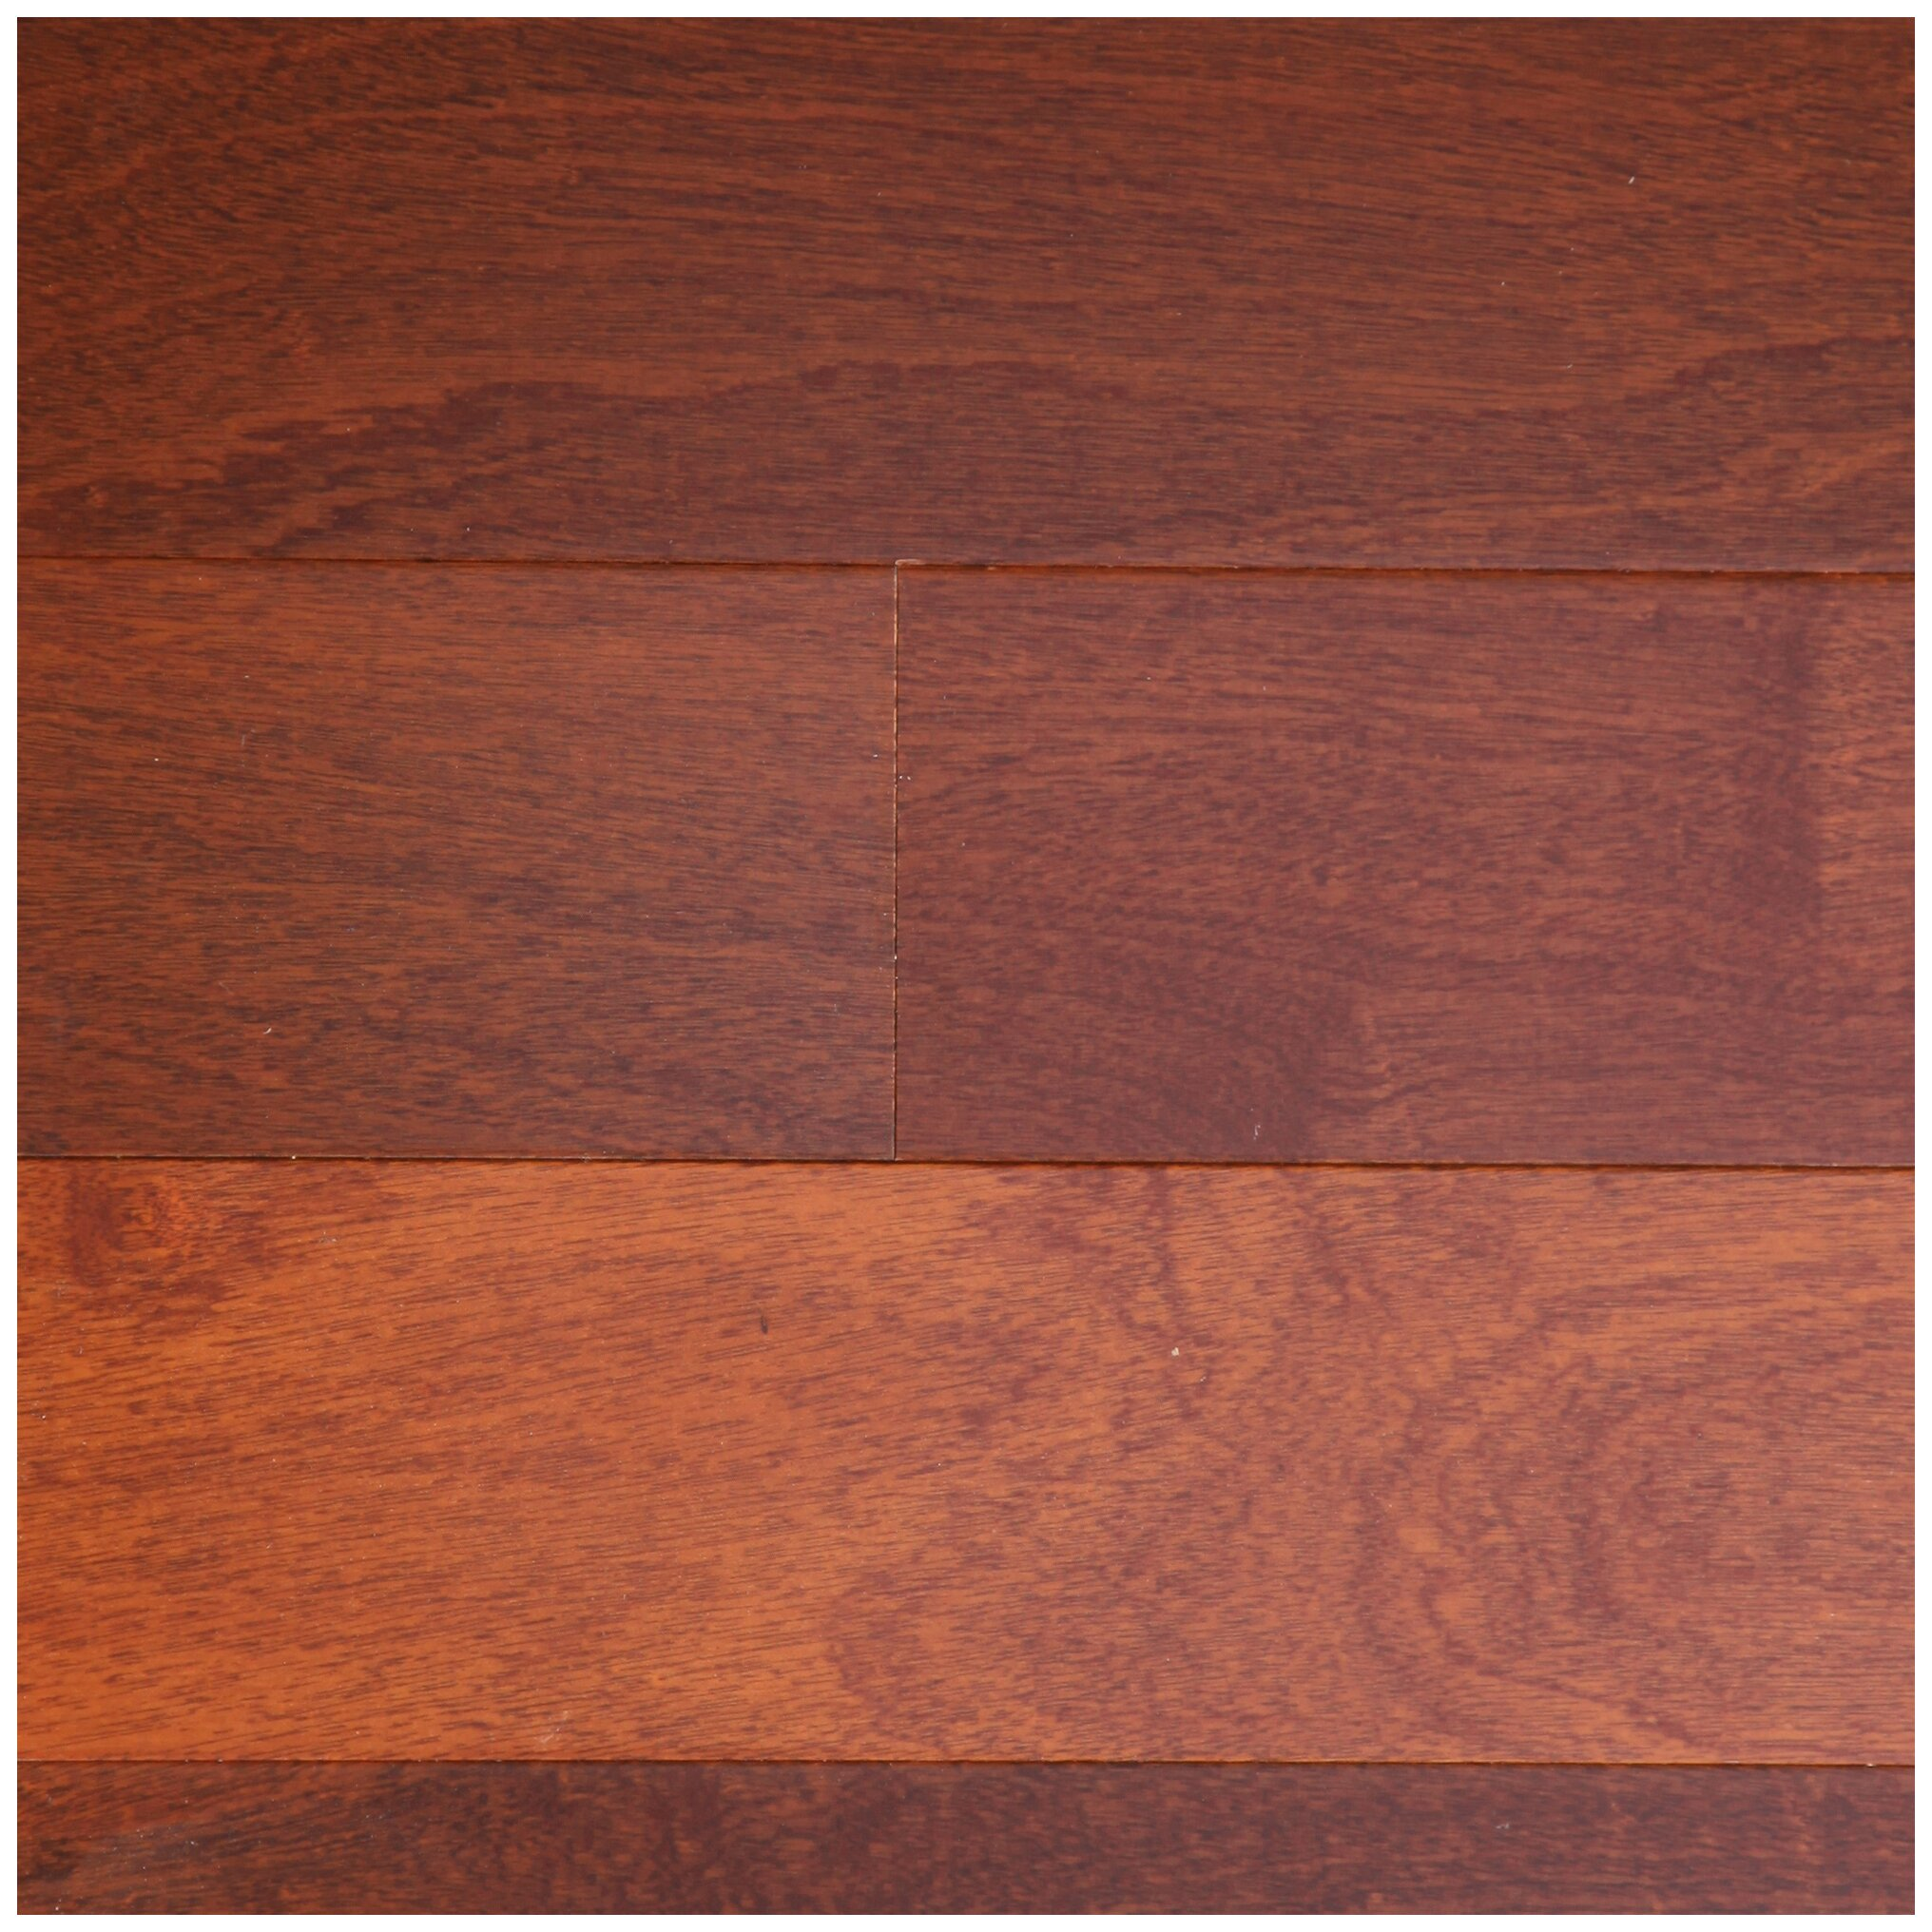 Easoon usa 5 engineered african mahogany hardwood for Mahogany flooring